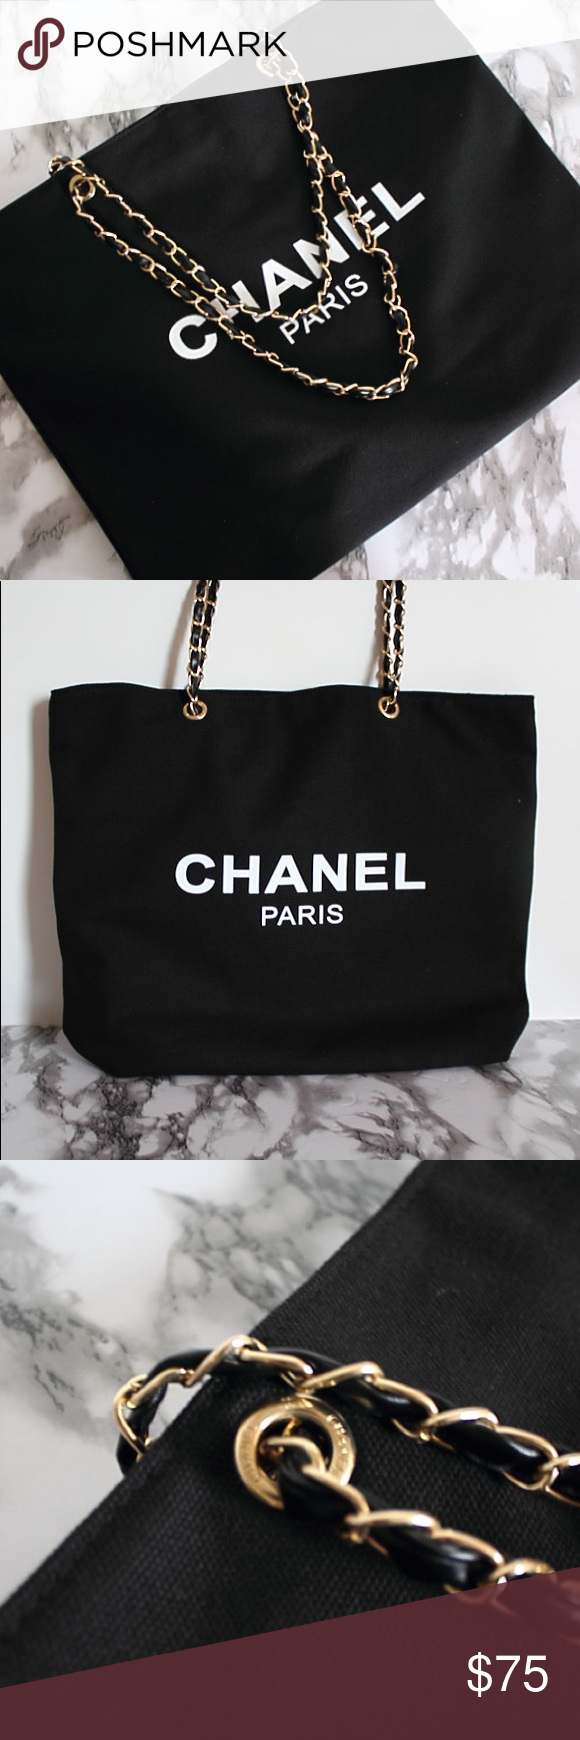 fe6871655985 Auth Chanel Vip Gift Canvas Leather Chain Tote Bag Authentic Chanel Paris  beauty vip gift,